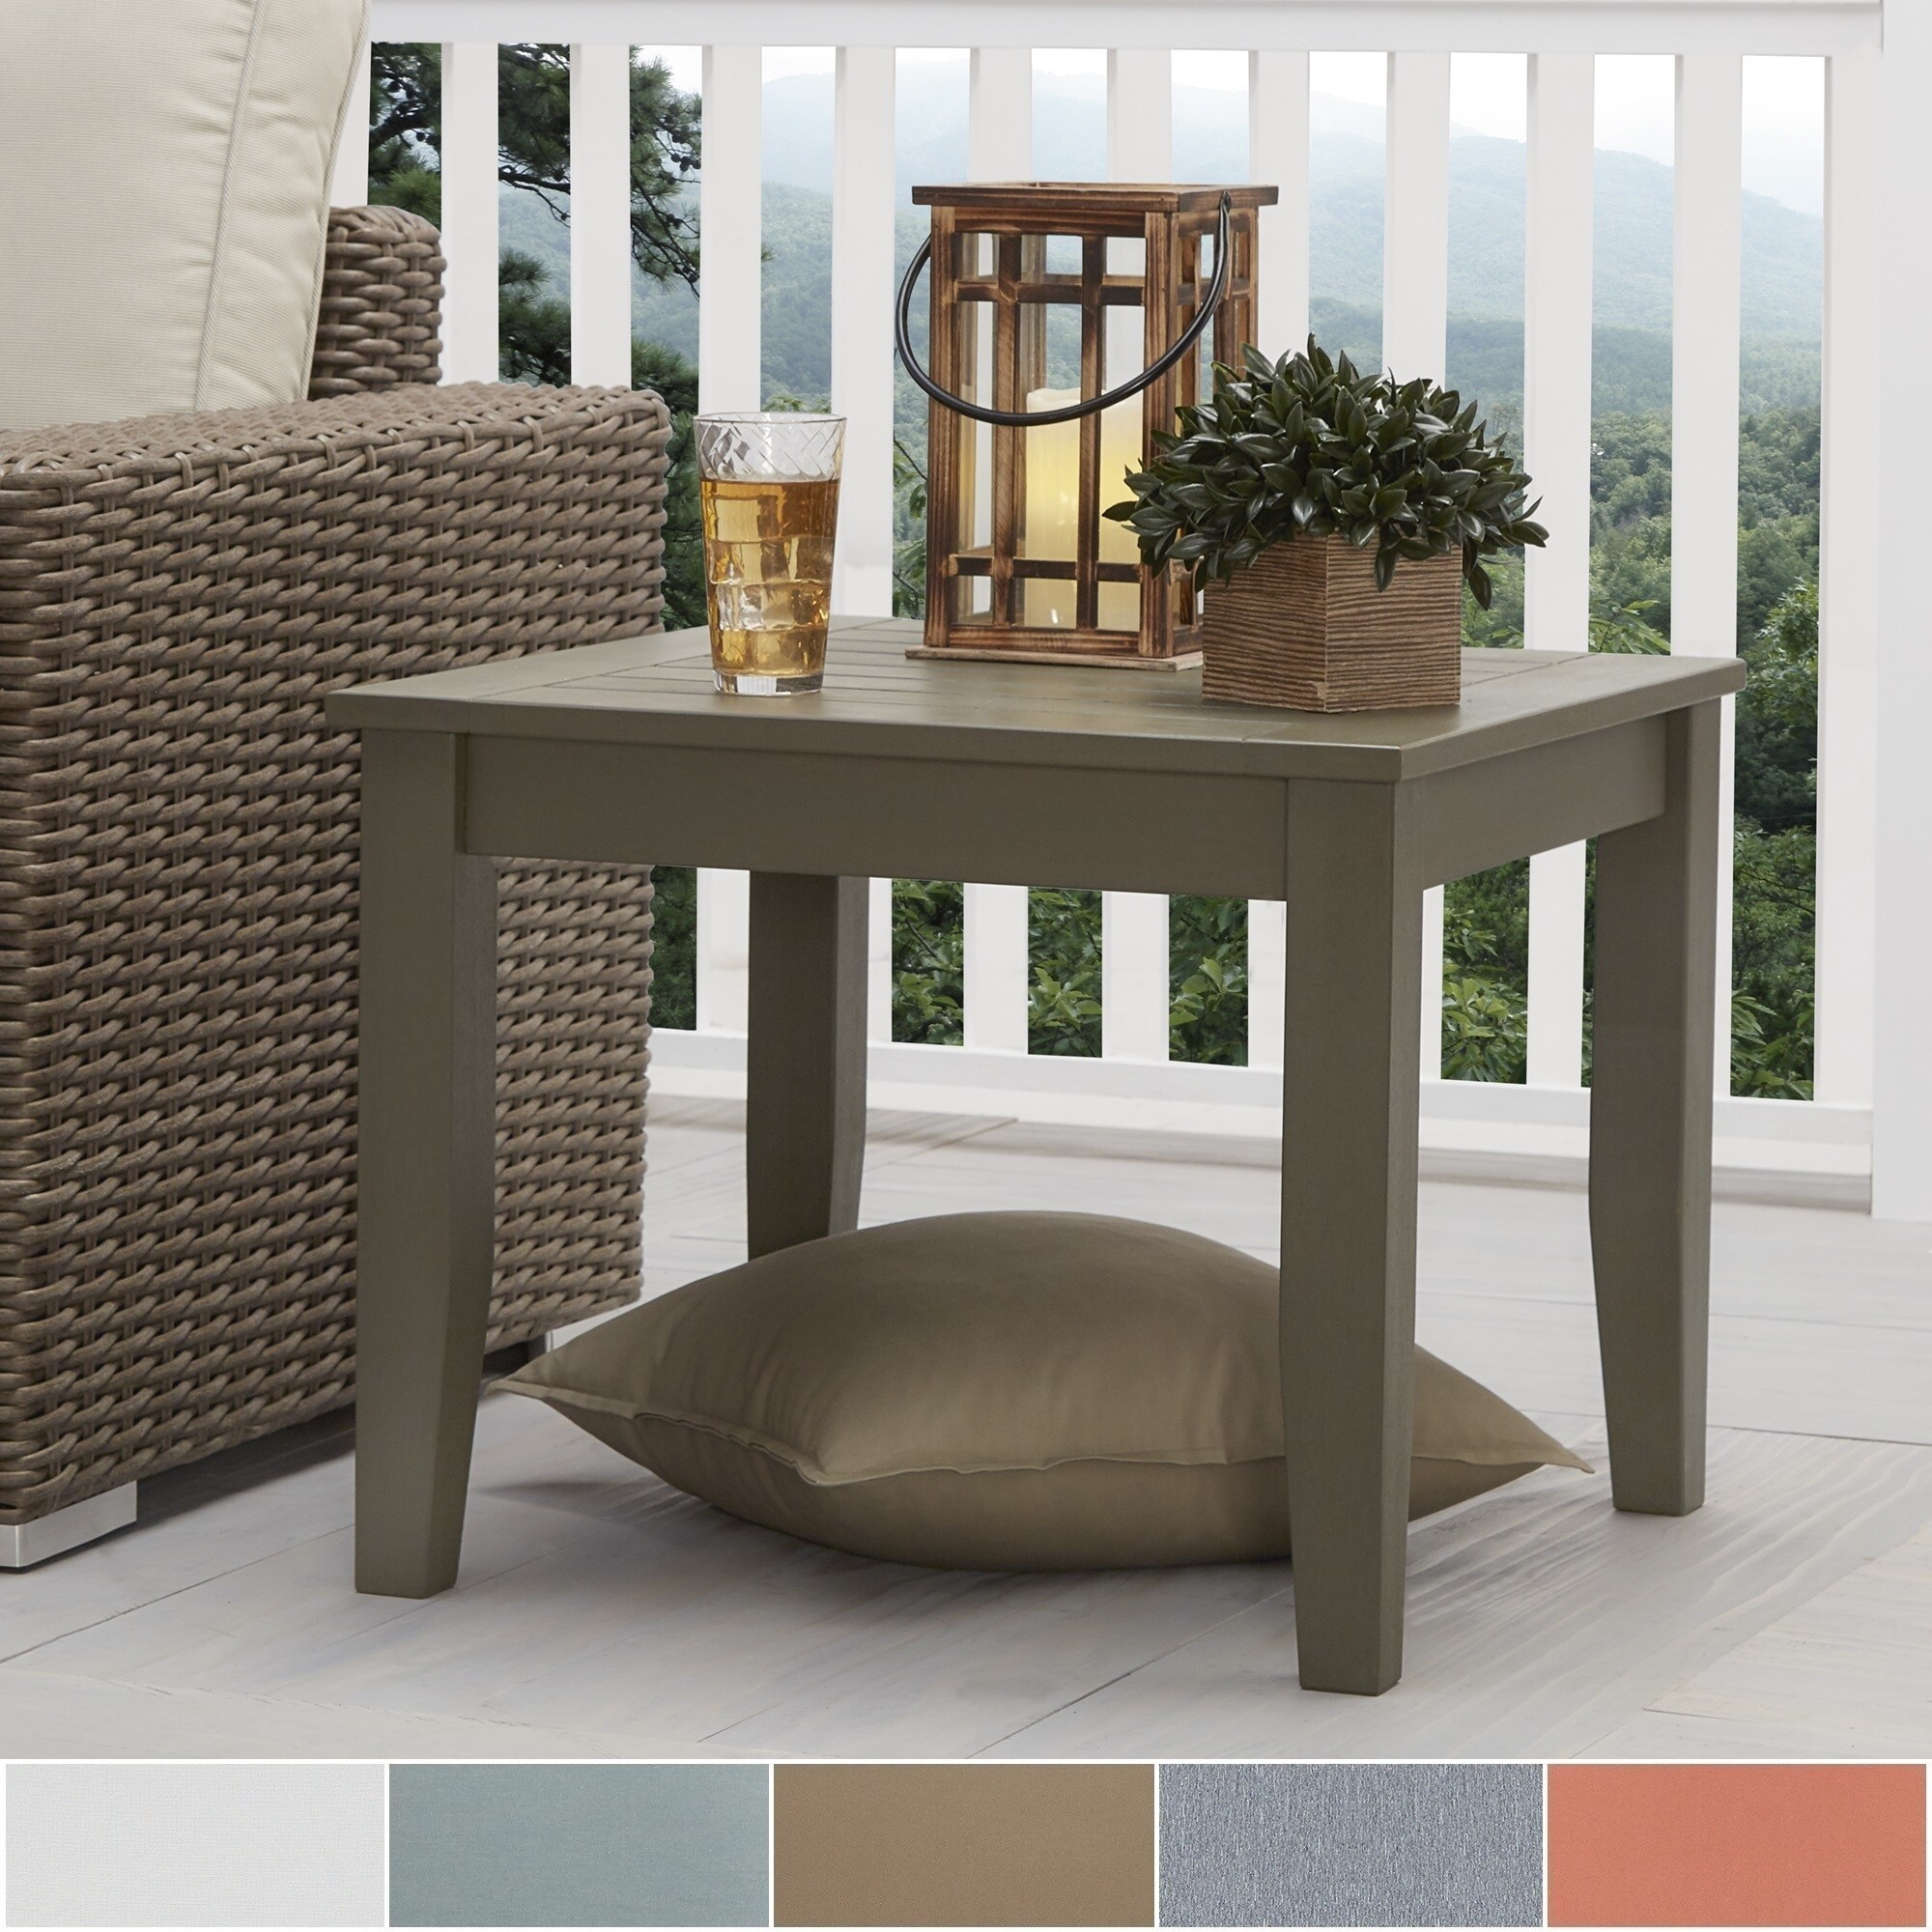 Genial Shop Yasawa Wood Patio Cushioned Accent Ottoman Side Table   Grey INSPIRE Q  Oasis   On Sale   Free Shipping Today   Overstock.com   13477499